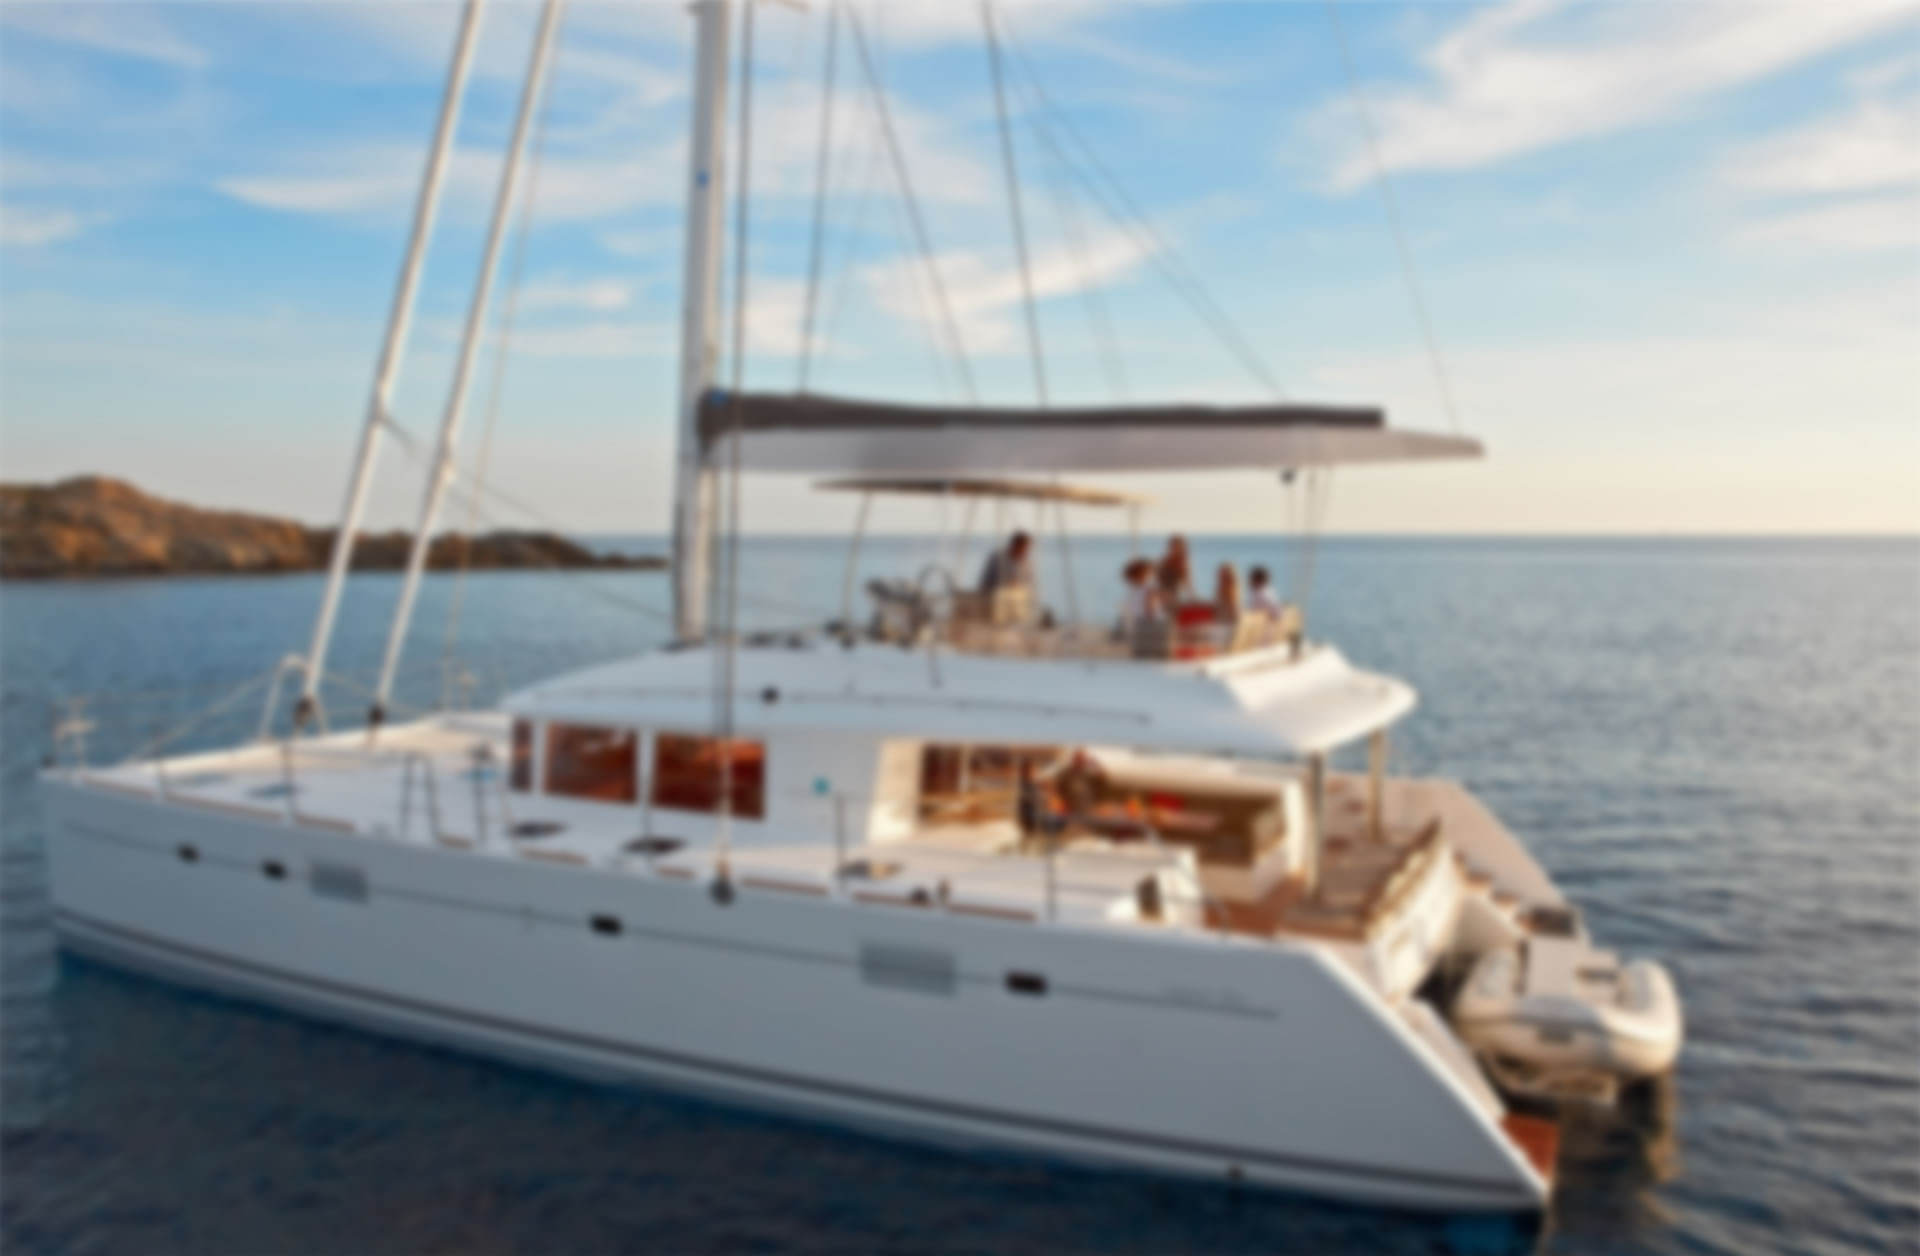 Catamaran versus monohull or why sail a catamaran